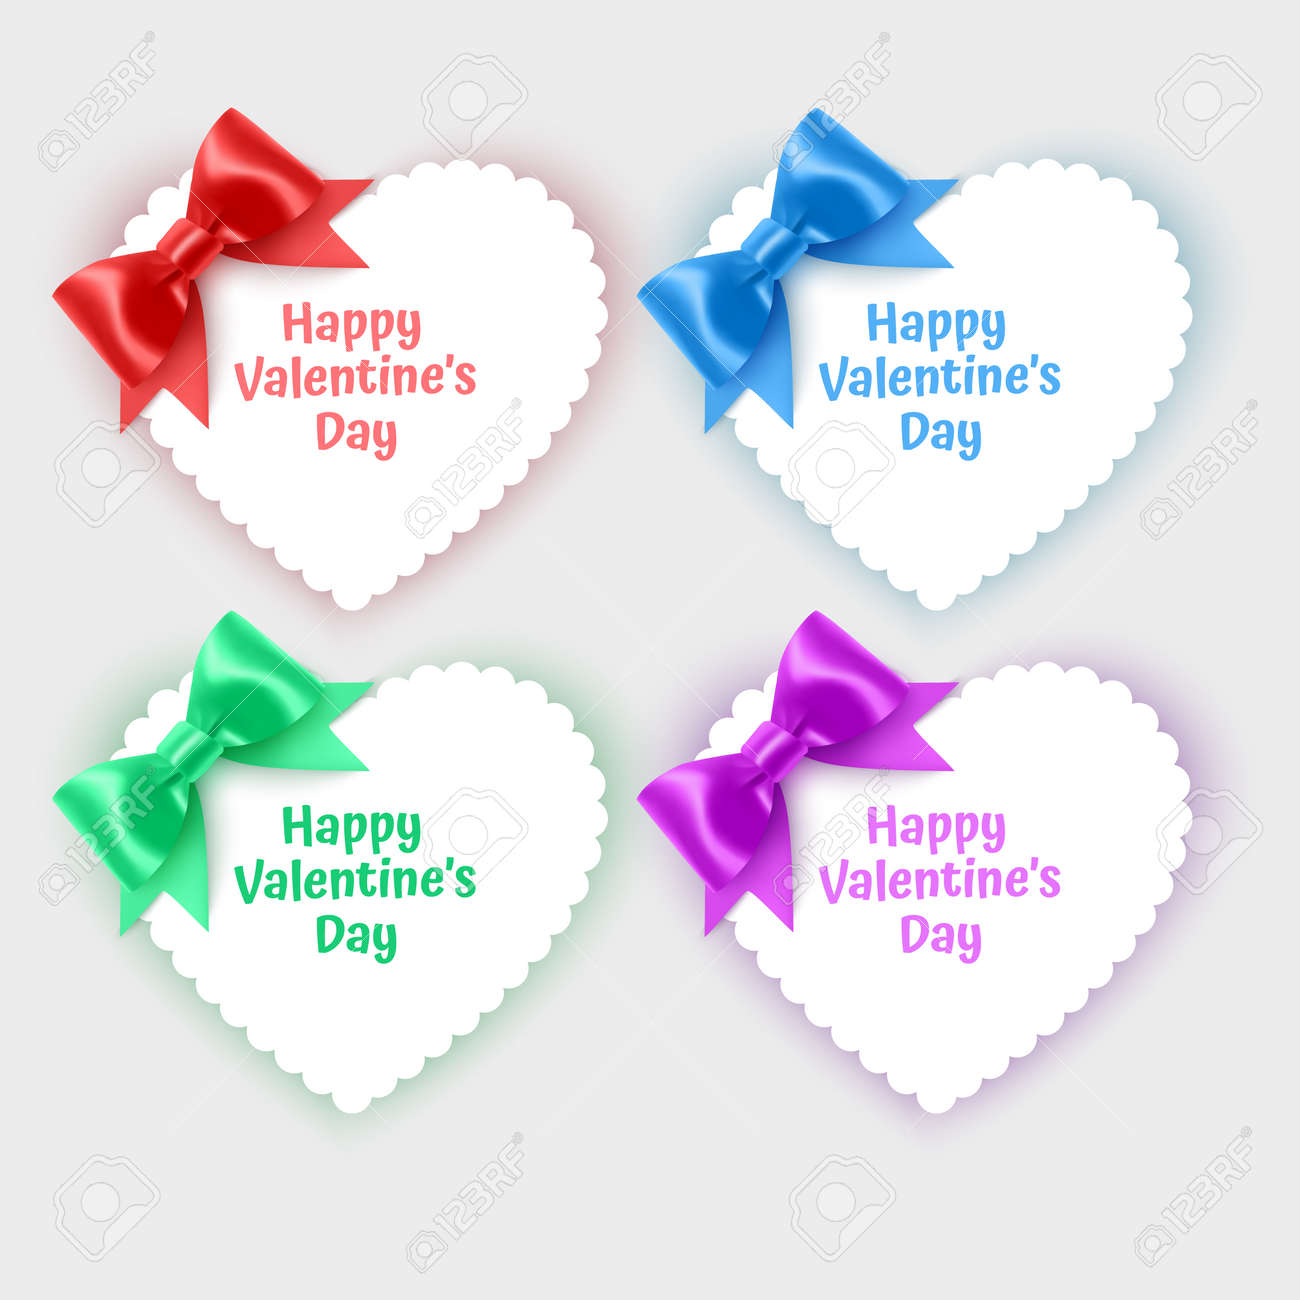 Set of valentine's day cards in the shape of a heart decorated with realistic bows of bright colors - 173703289